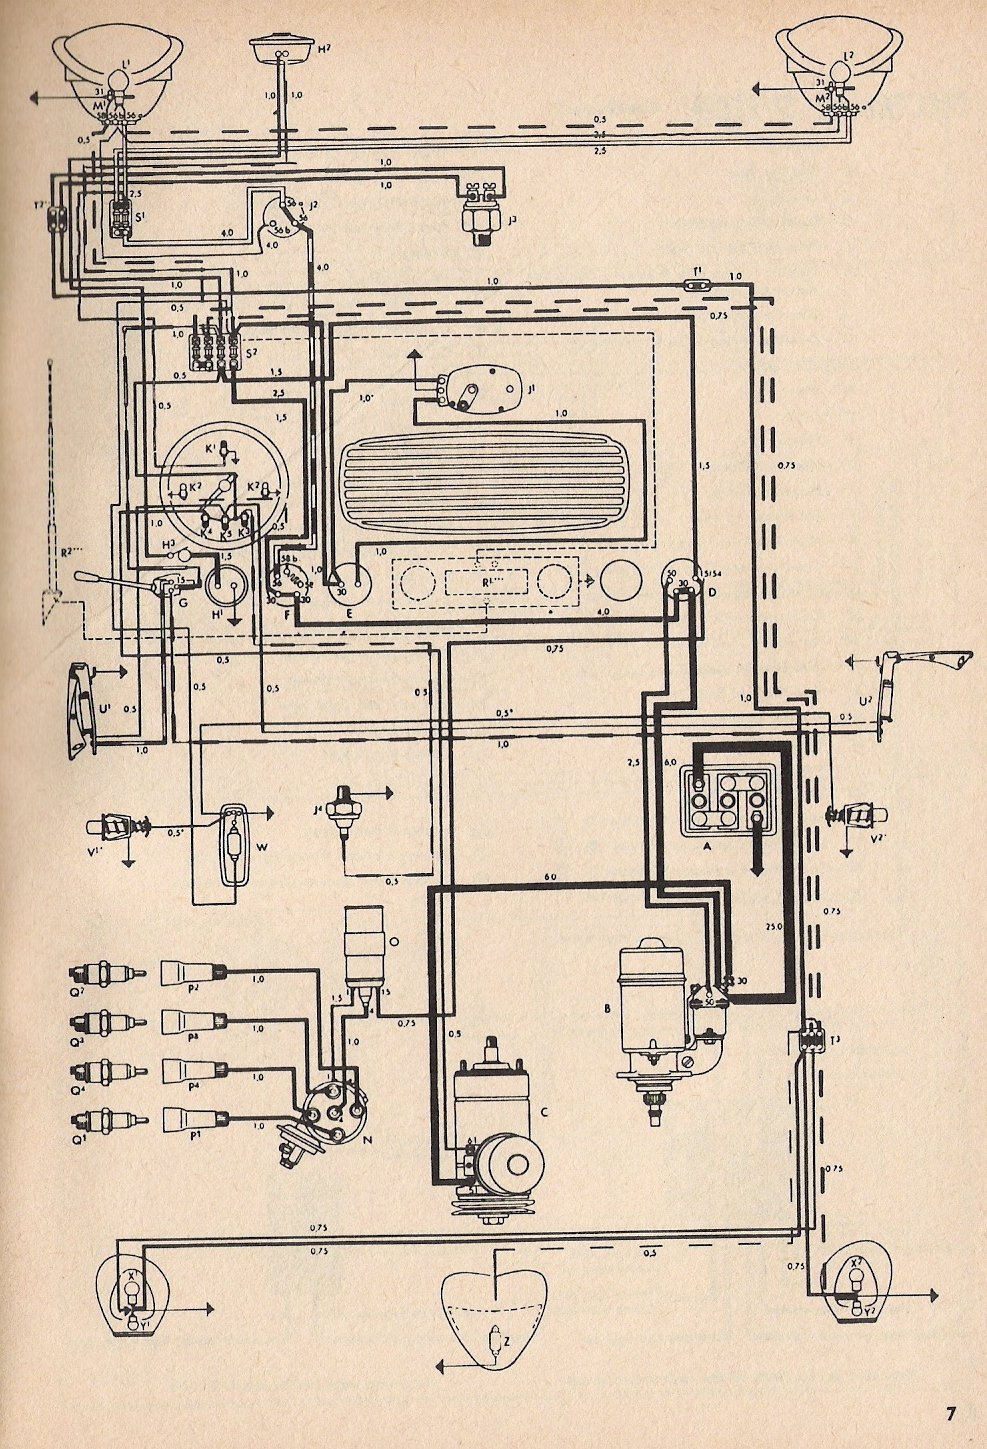 Type 1 Wiring Diagrams Ignition Switch Diagram 1968 Jeep Gladiator